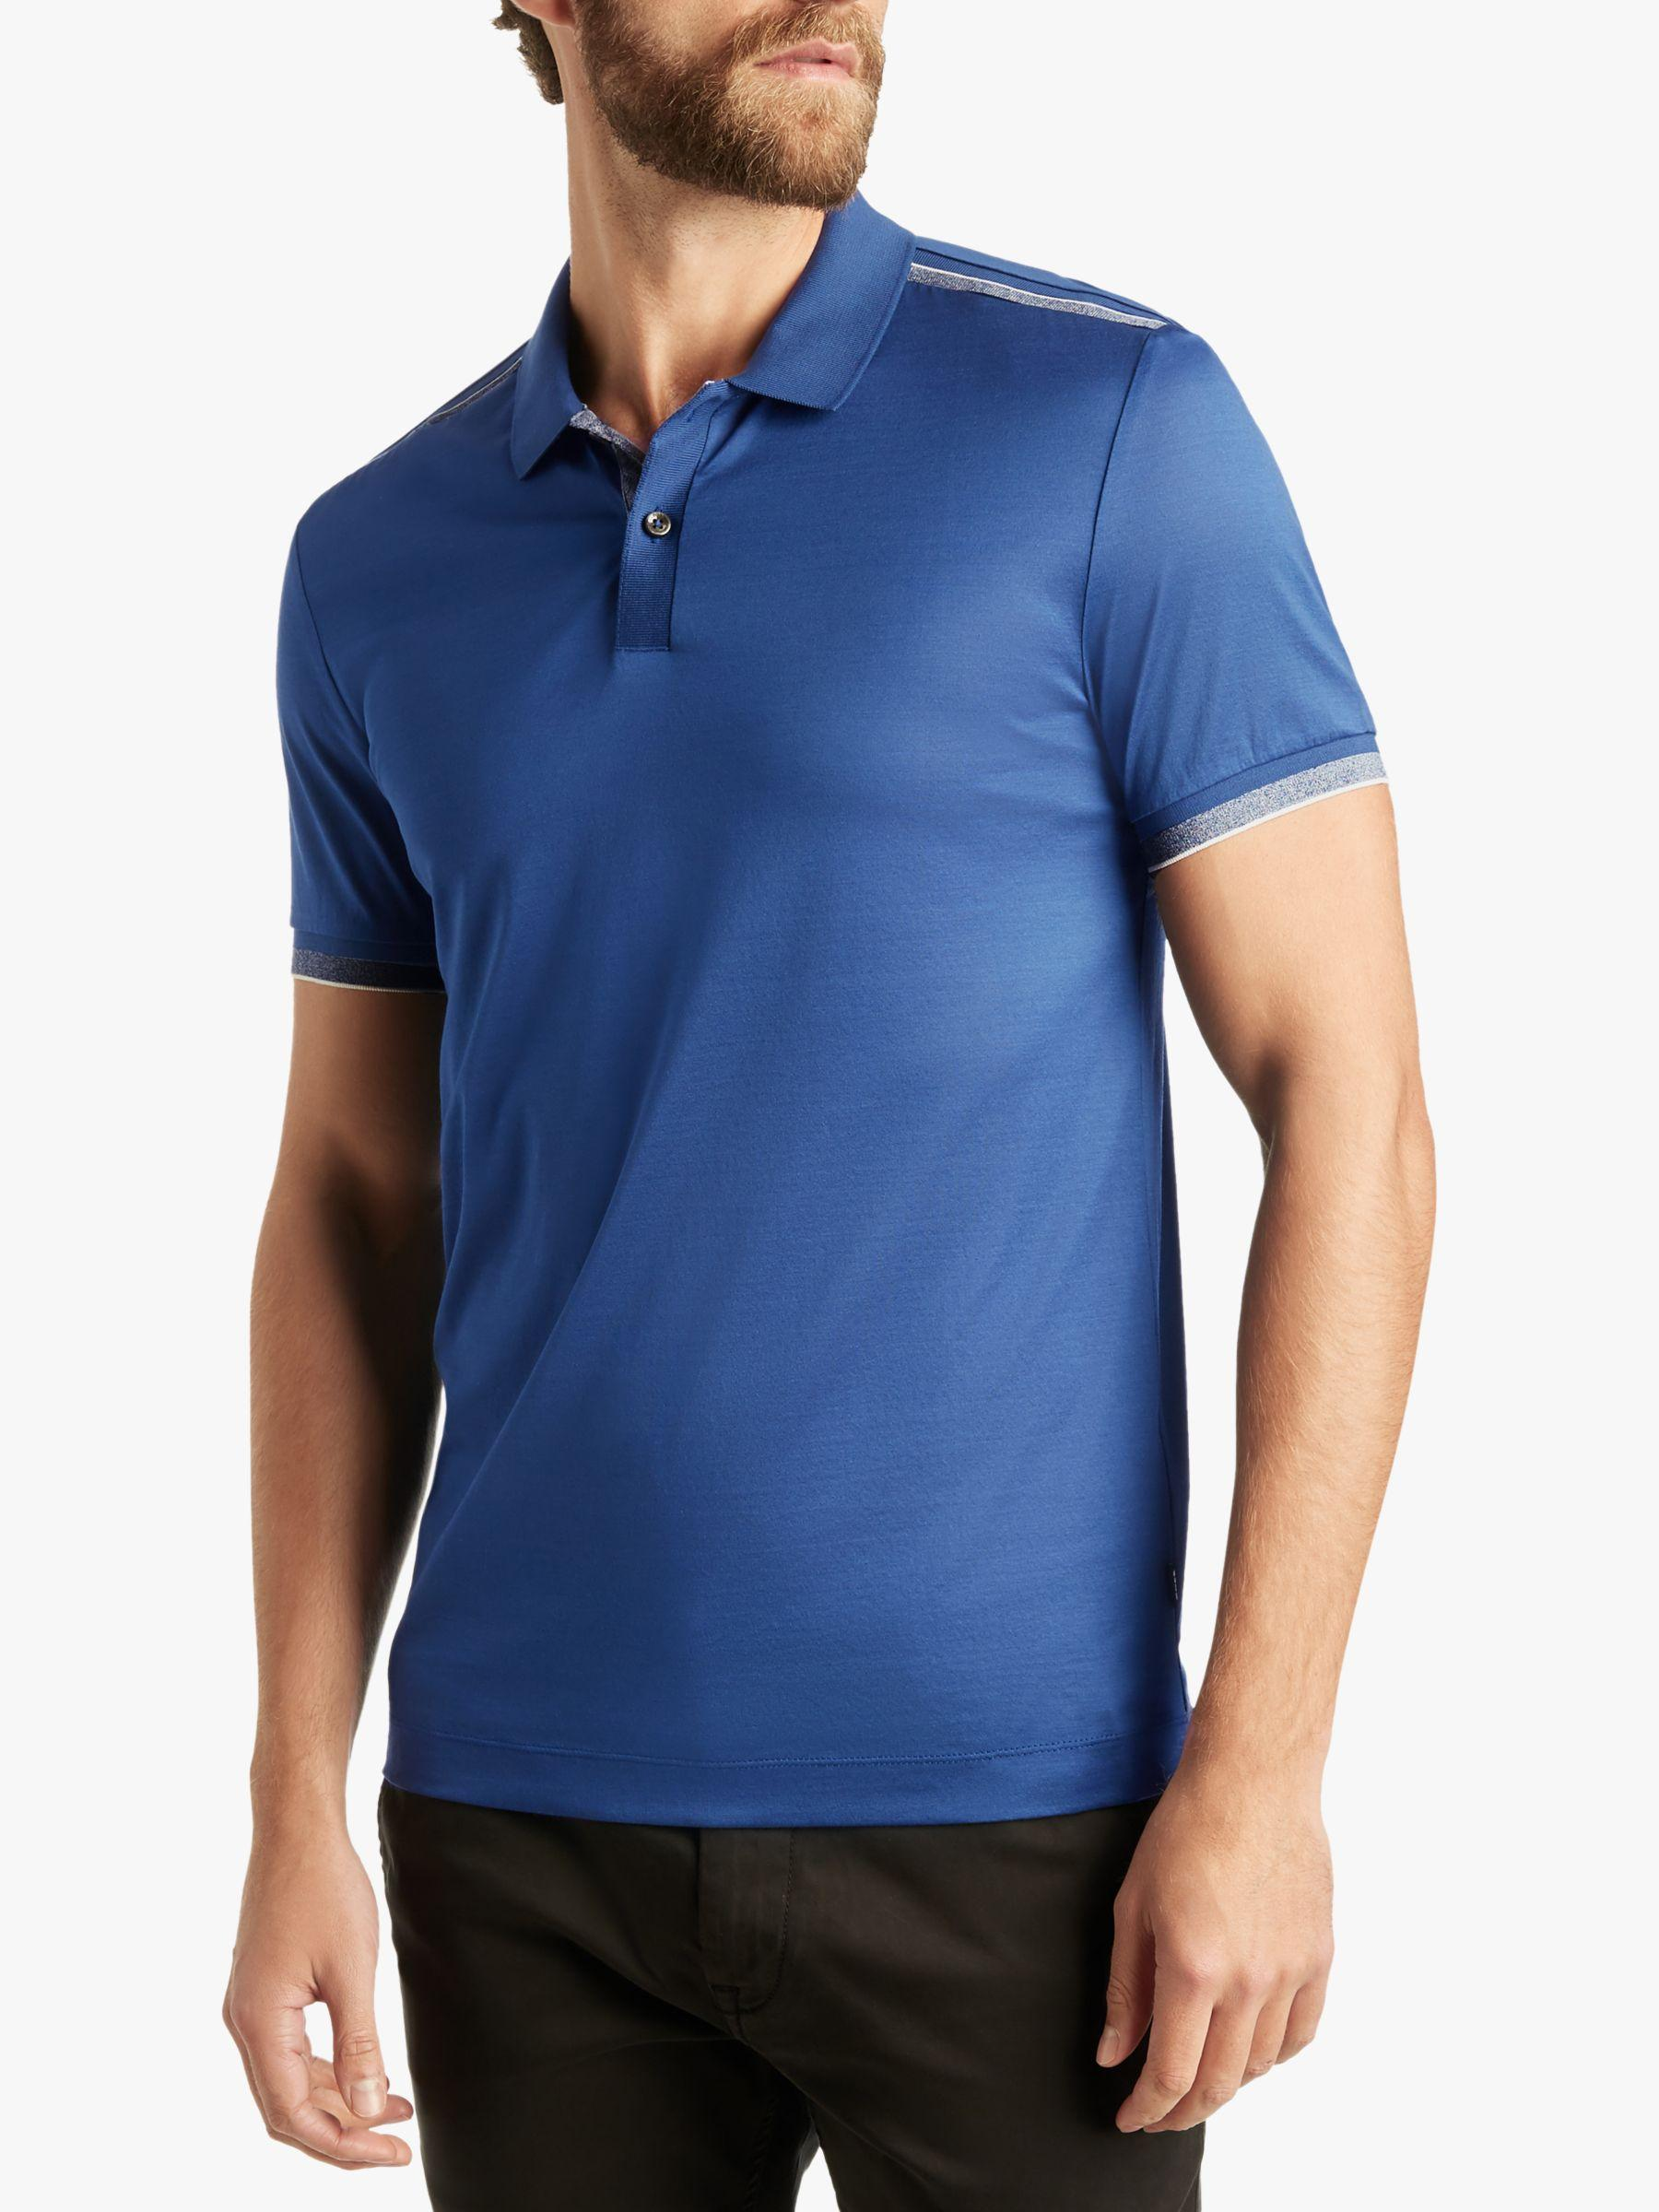 9fefc1536 John Lewis Mens Hugo Boss Polo Shirt | Kuenzi Turf & Nursery